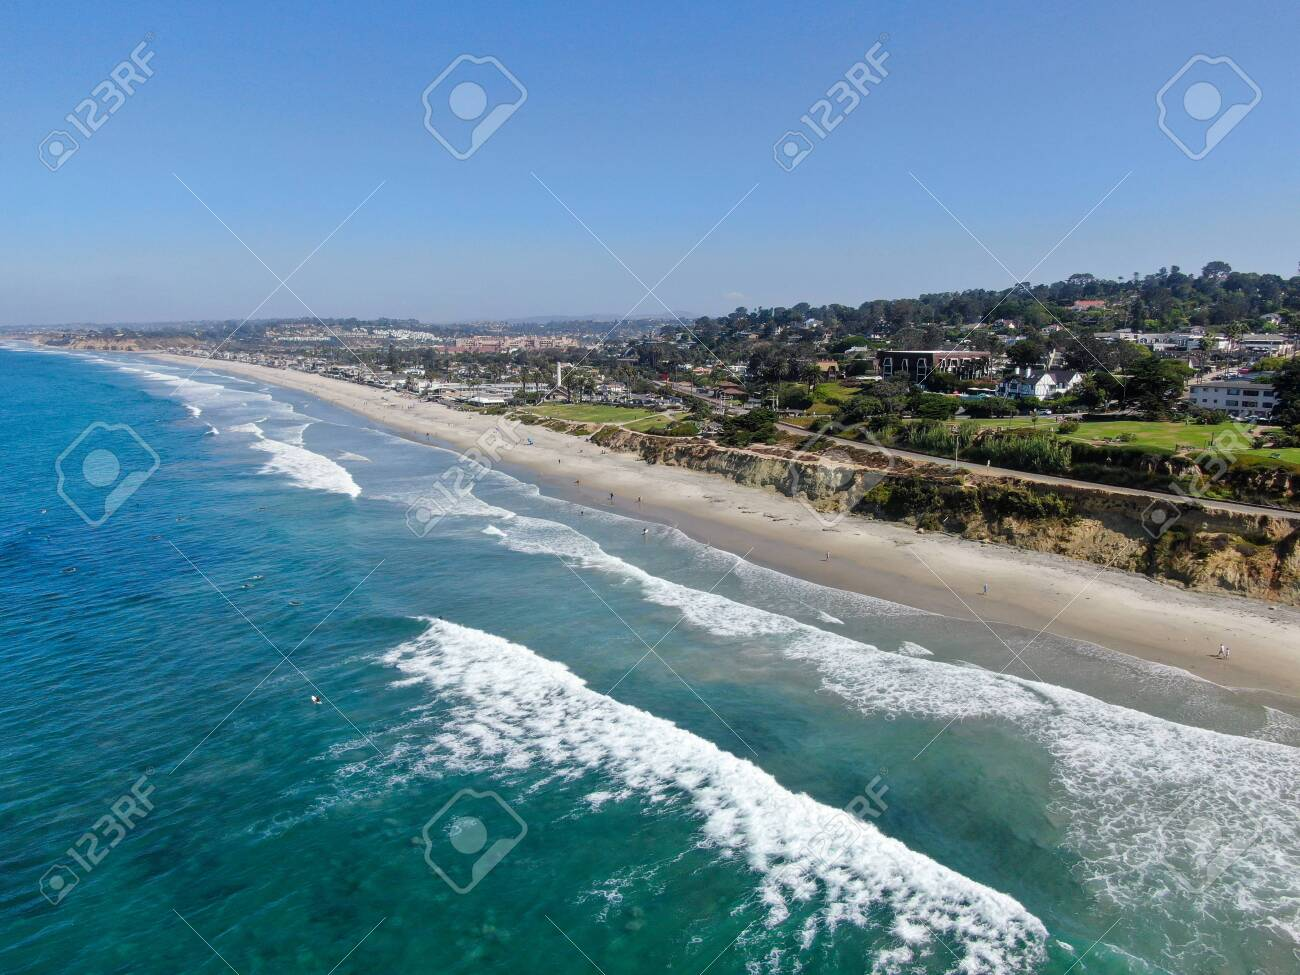 Aerial view of Del Mar coastline and beach, San Diego County, California, USA. Pacific ocean with long beach and small wave - 130995798